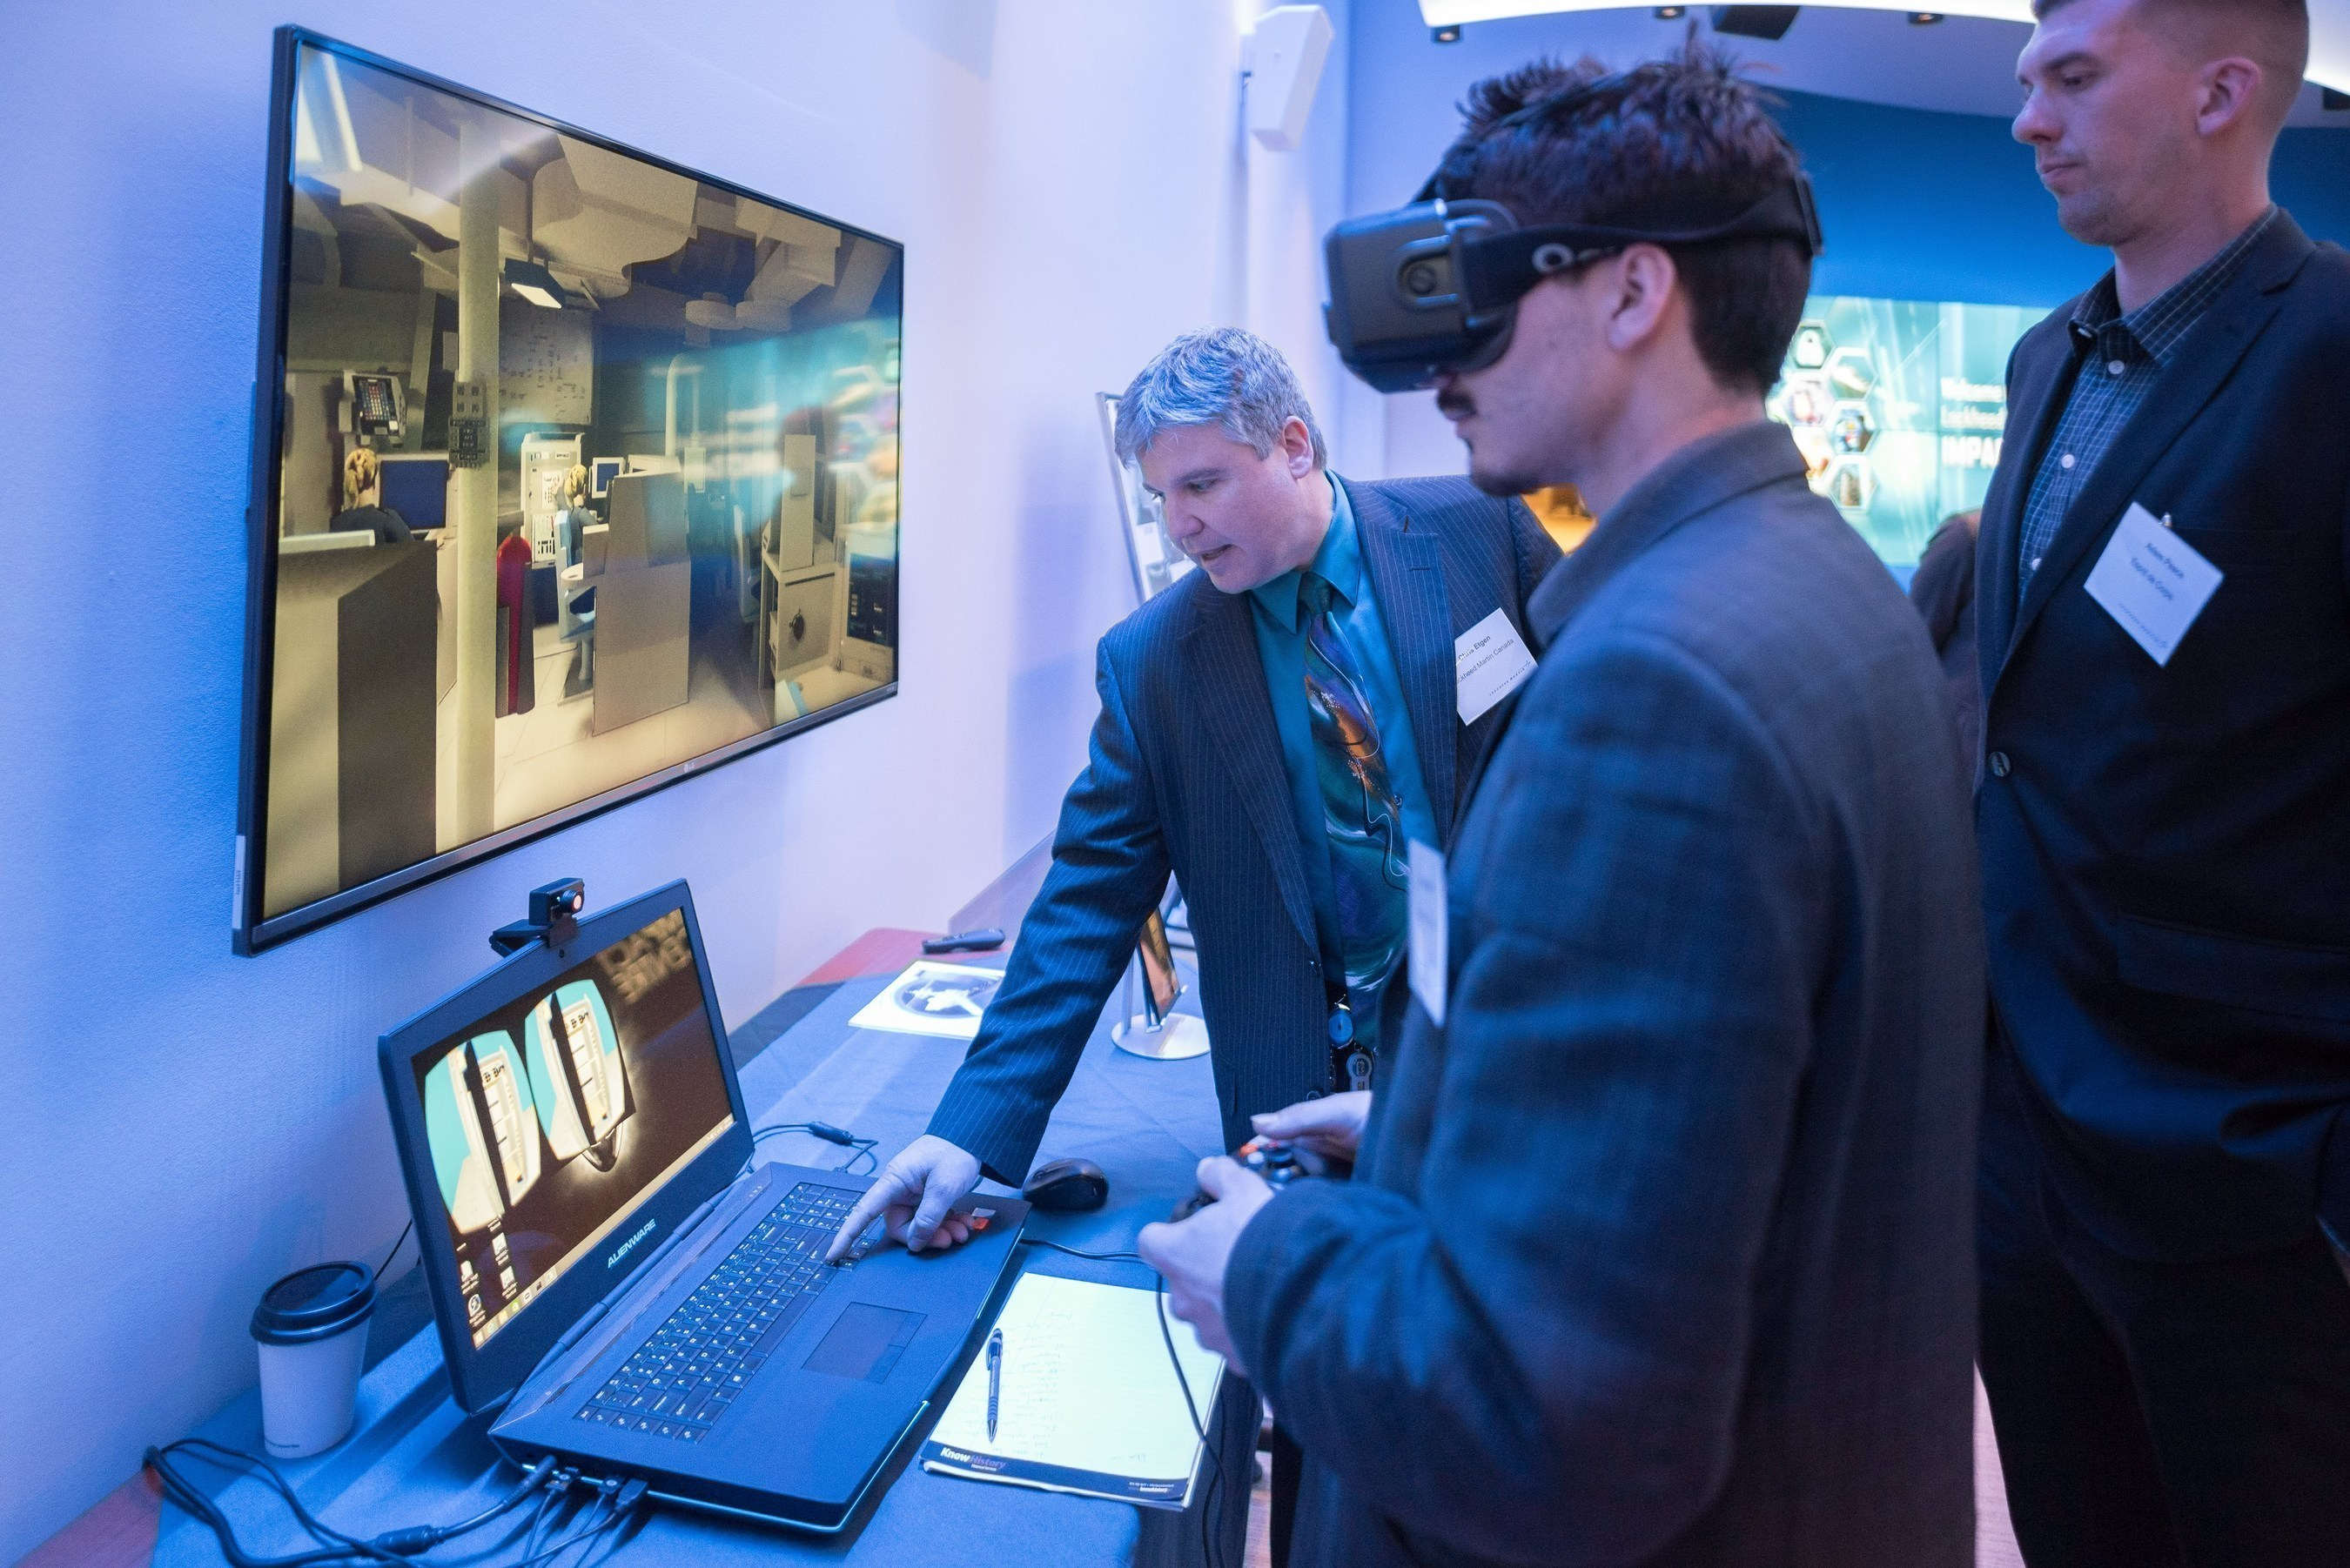 A member of the Lockheed Martin team demonstrates virtual reality goggles at the IMPACT Centre grand opening.